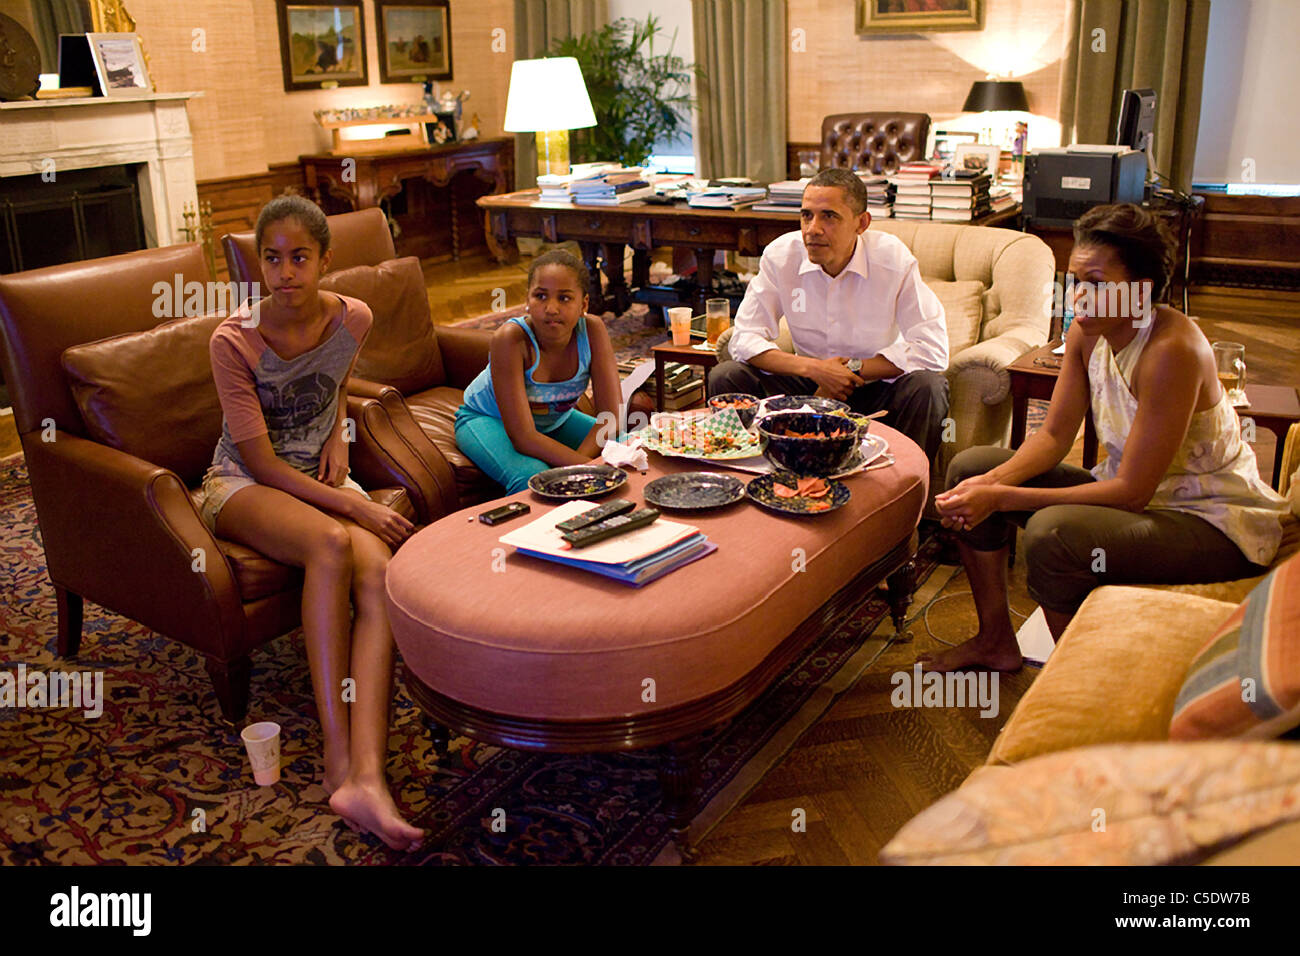 President Barack Obama and his daughters Sasha and Malia watch the World Cup soccer game between the U.S. and Japan - Stock Image